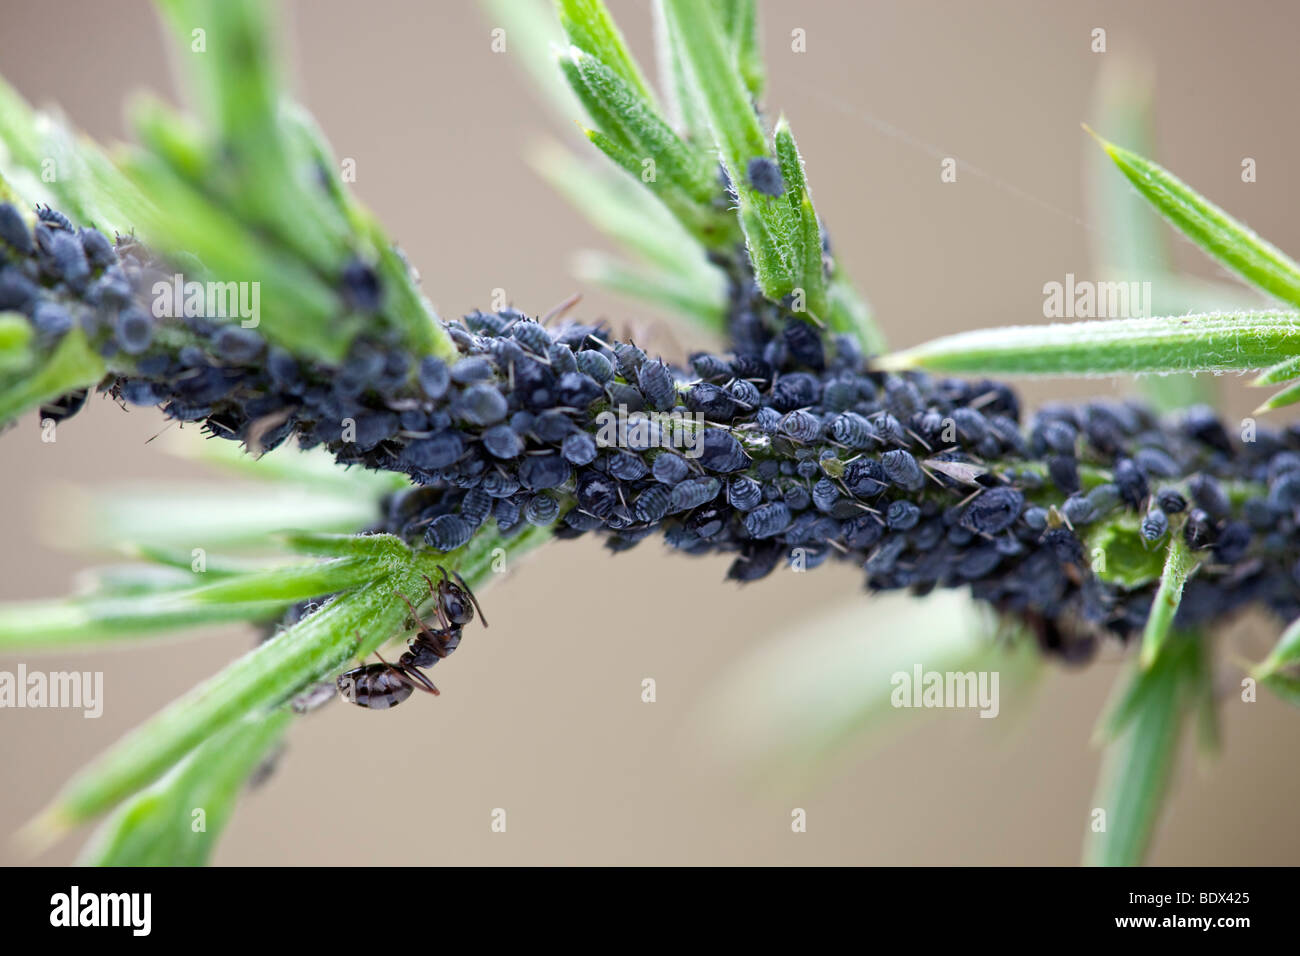 colony of aphids on gorse; ants feeding on the aphid's honeydew - Stock Image